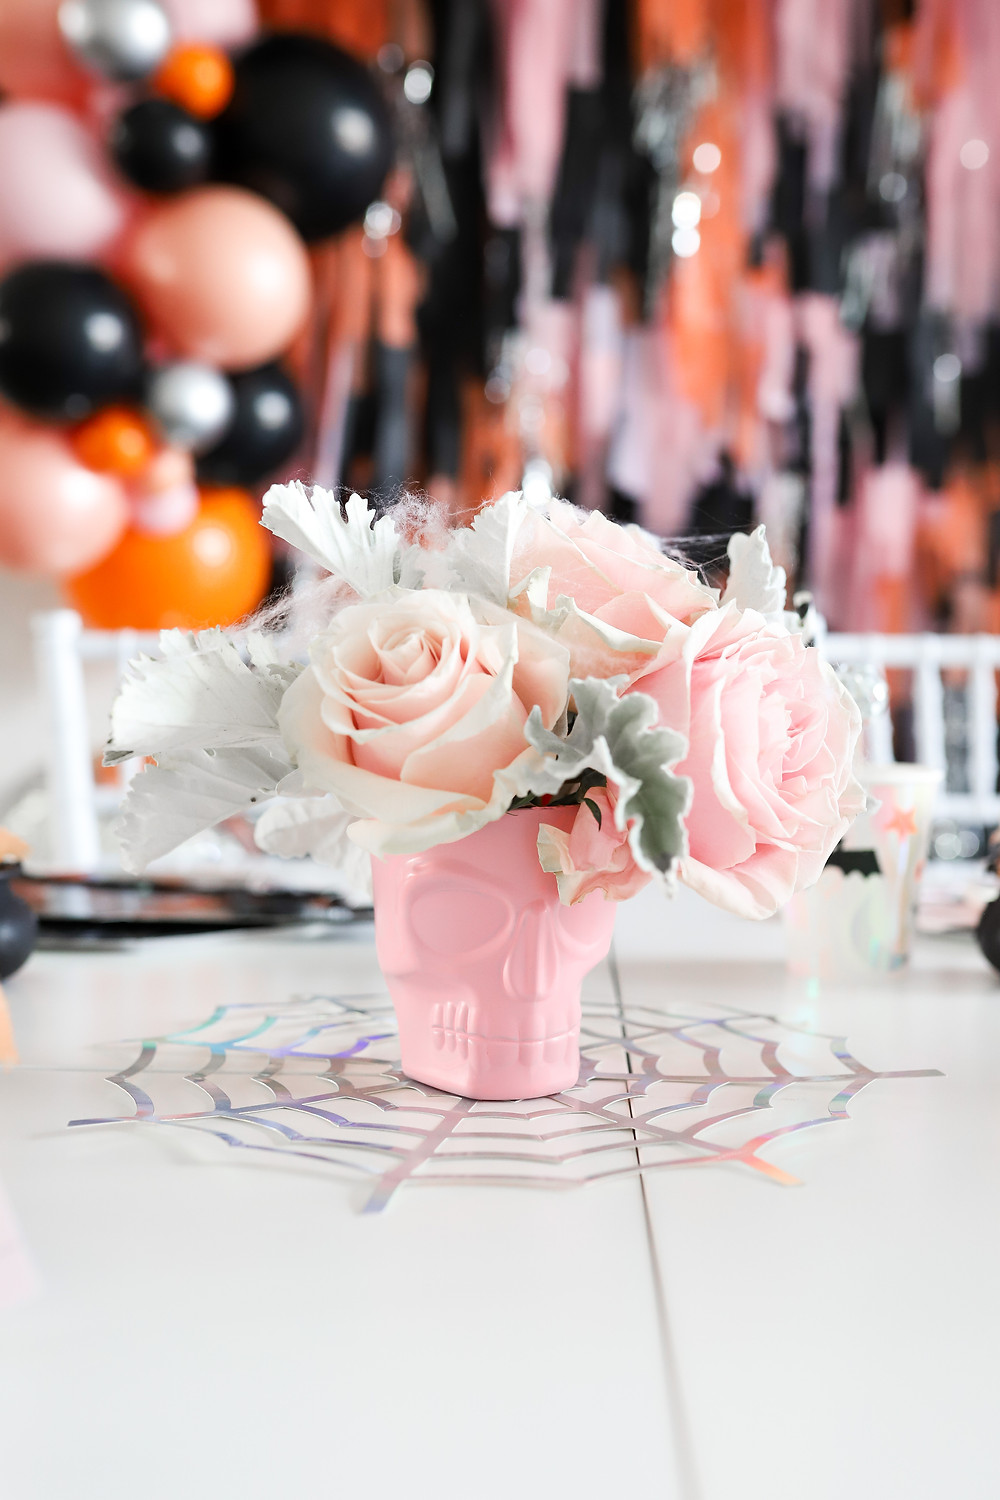 A wall filled with black, orange, pink, sparkly arched balloons and streamers for a children's halloween party filled with decorations on a white kids table with a pink skull vase holding pink roses covered in cobwebs.